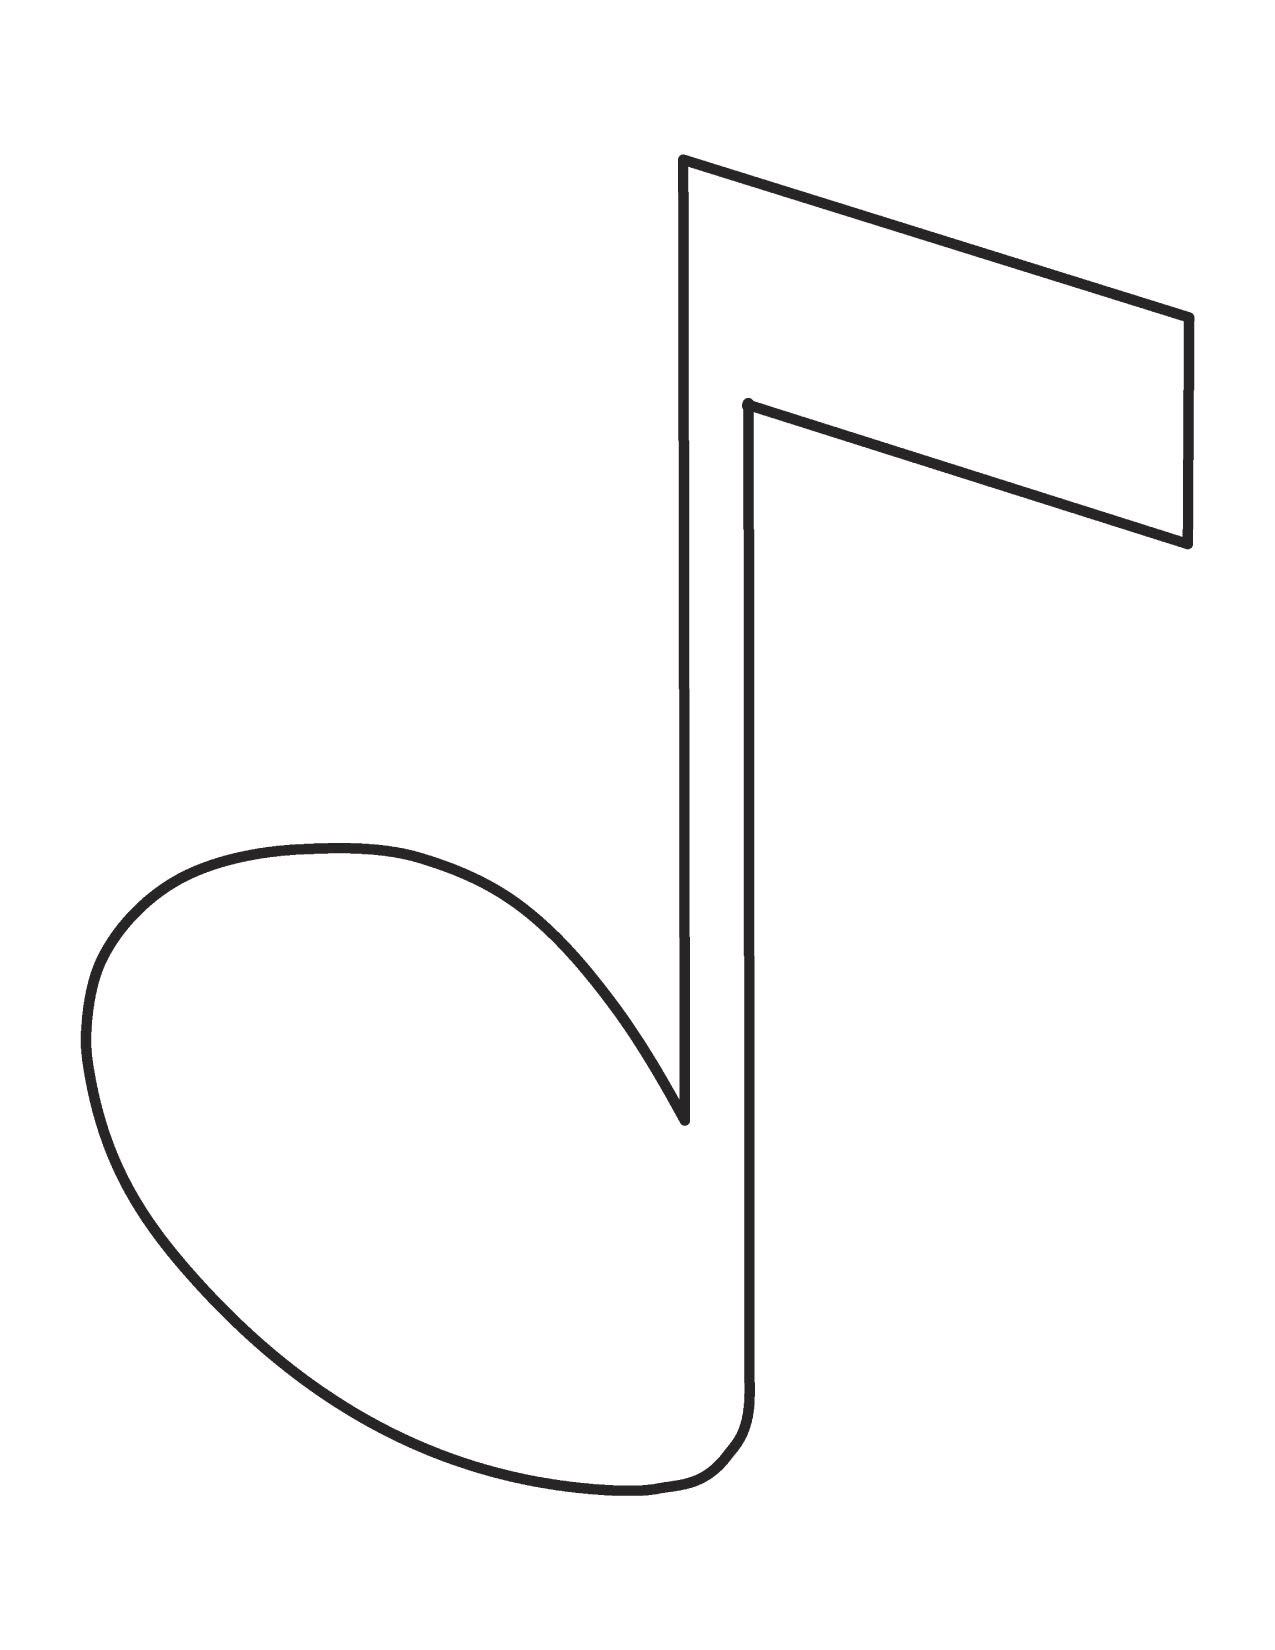 music note coloring page - Music Notes Coloring Pages